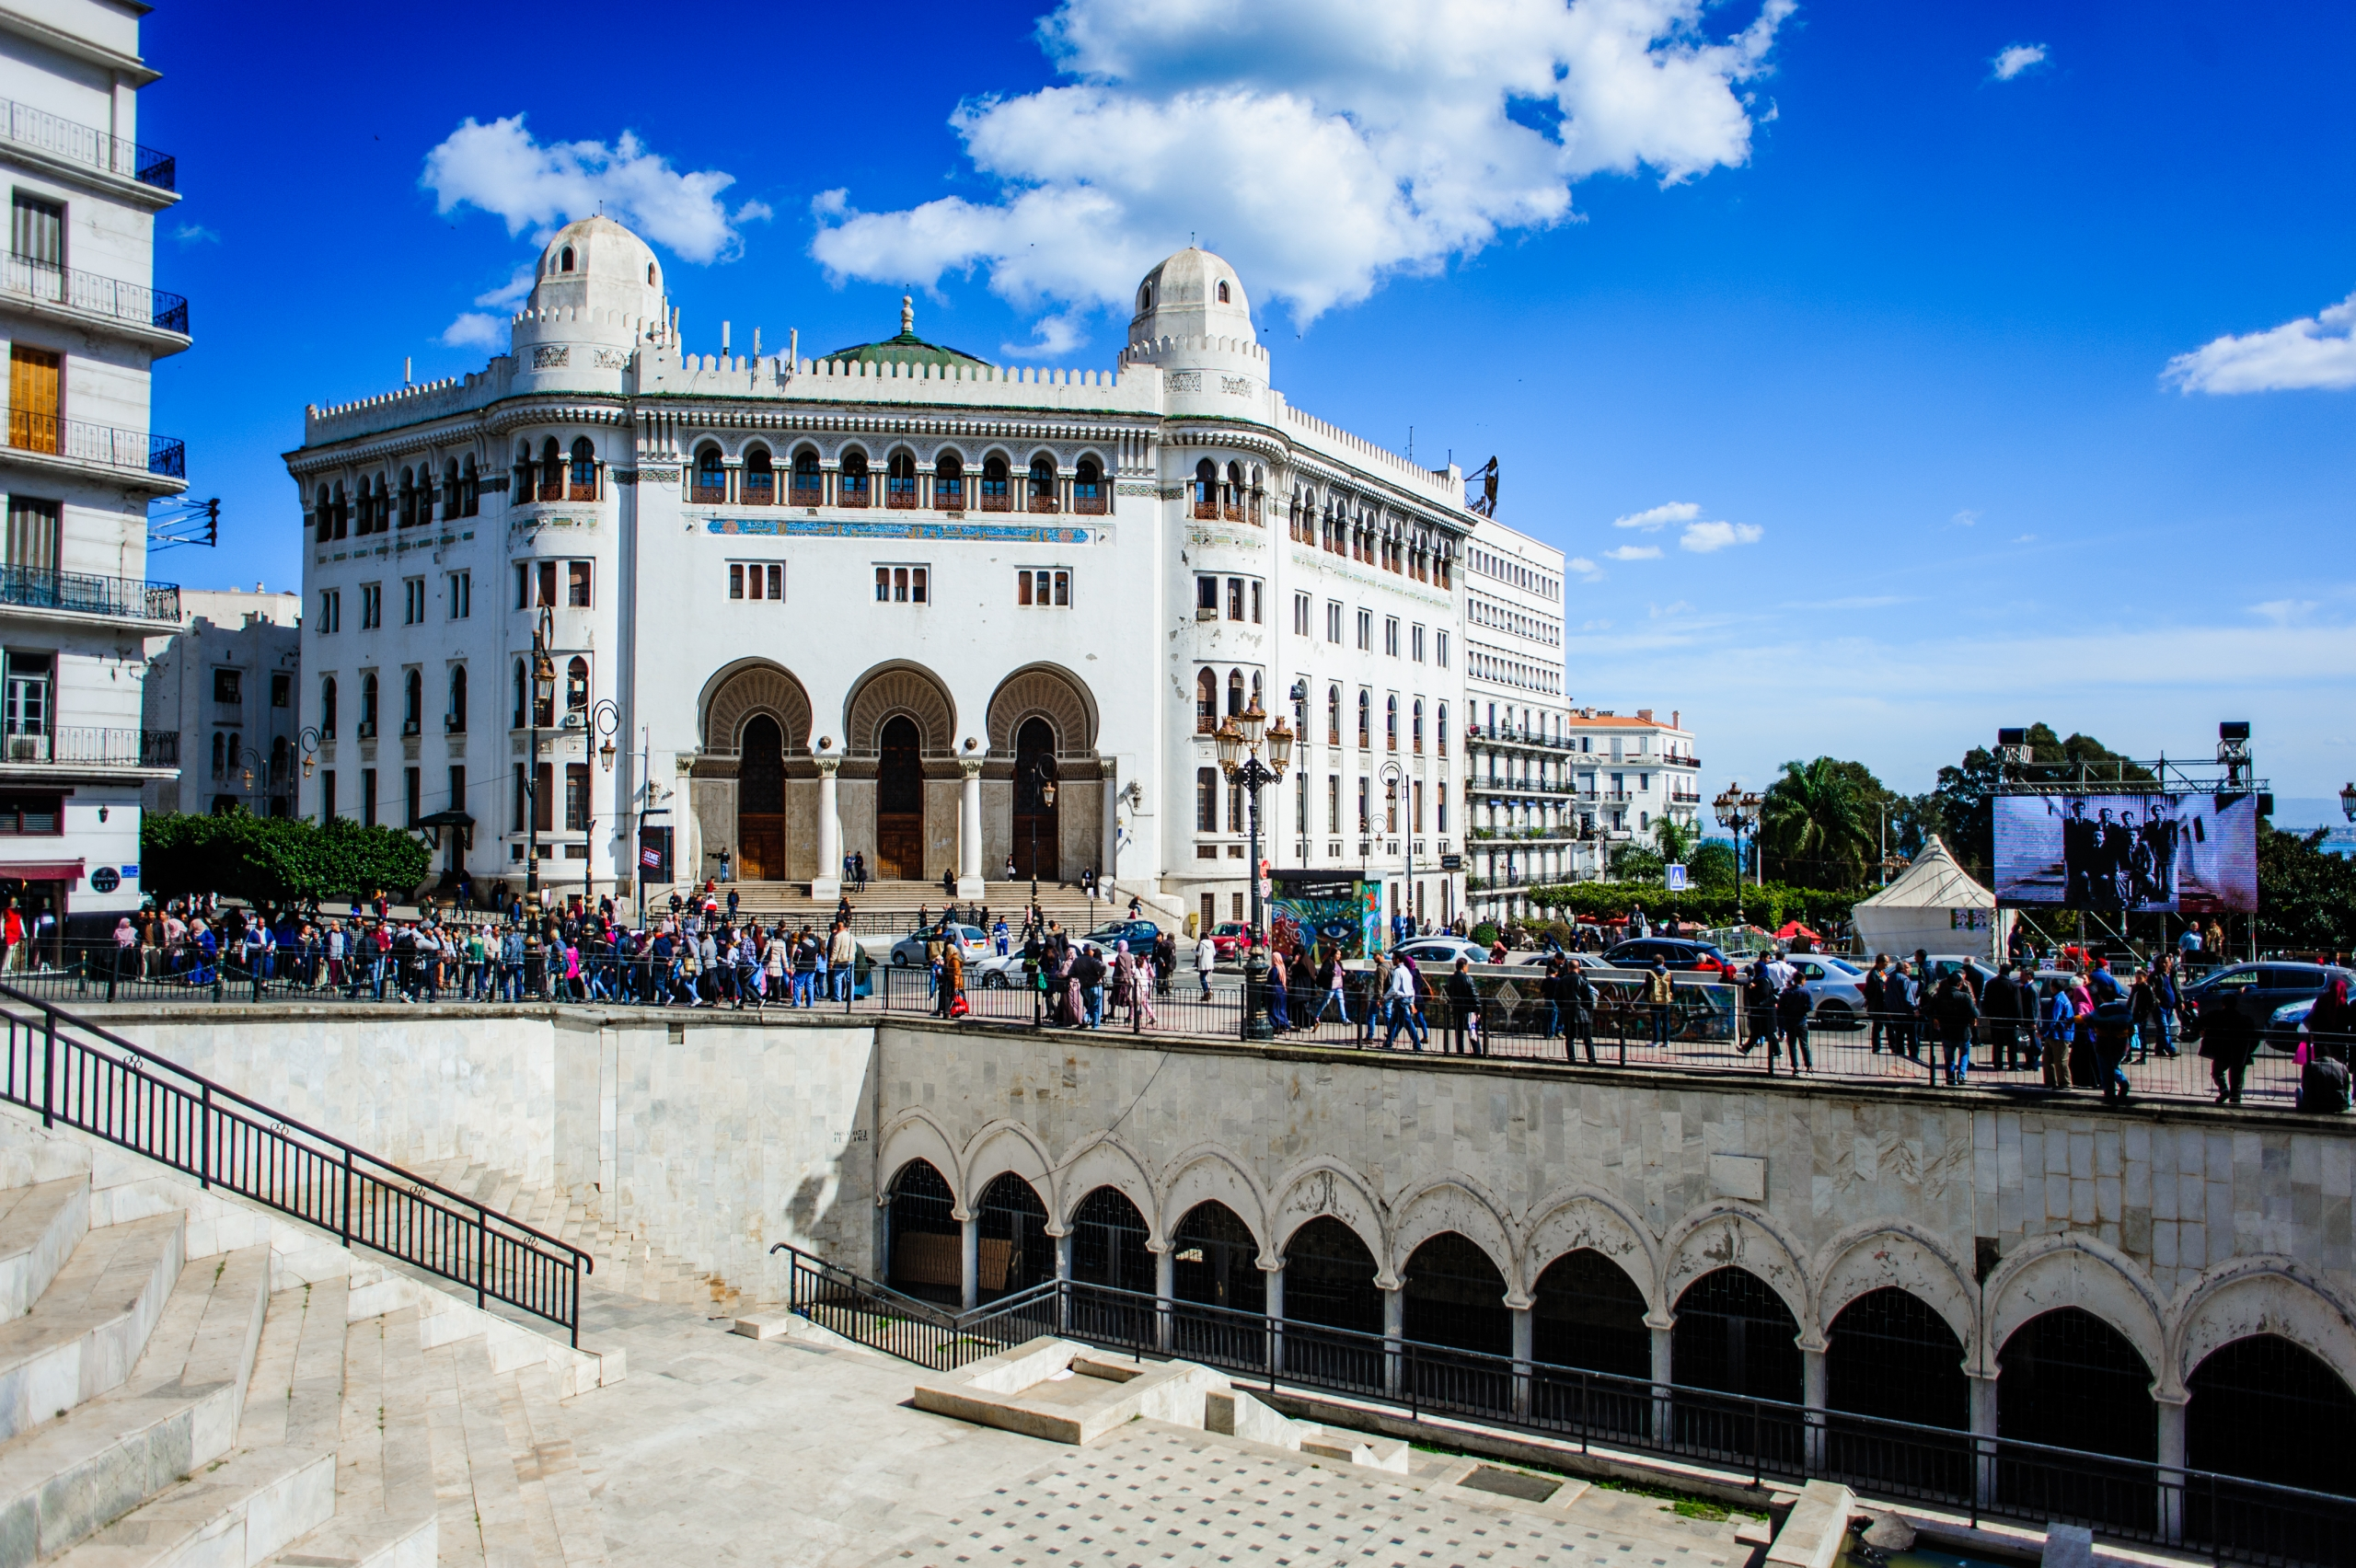 La grande Poste d'Alger - Grand Post Office Algiers